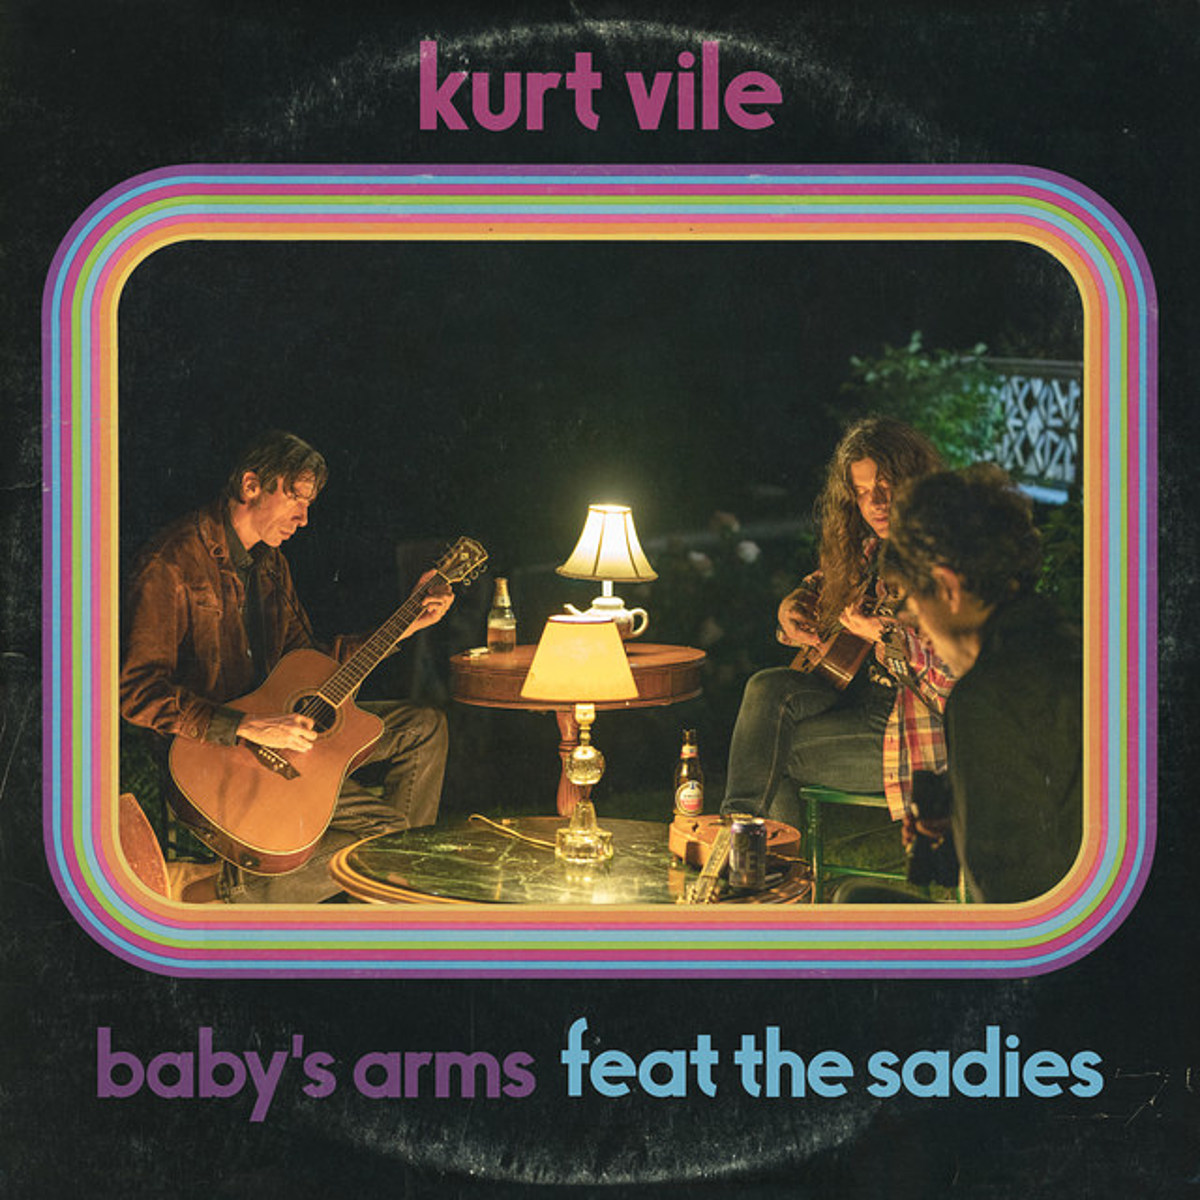 """Kurt Vile teams with The Sadies for new version of """"Baby's Arms"""" (listen)"""